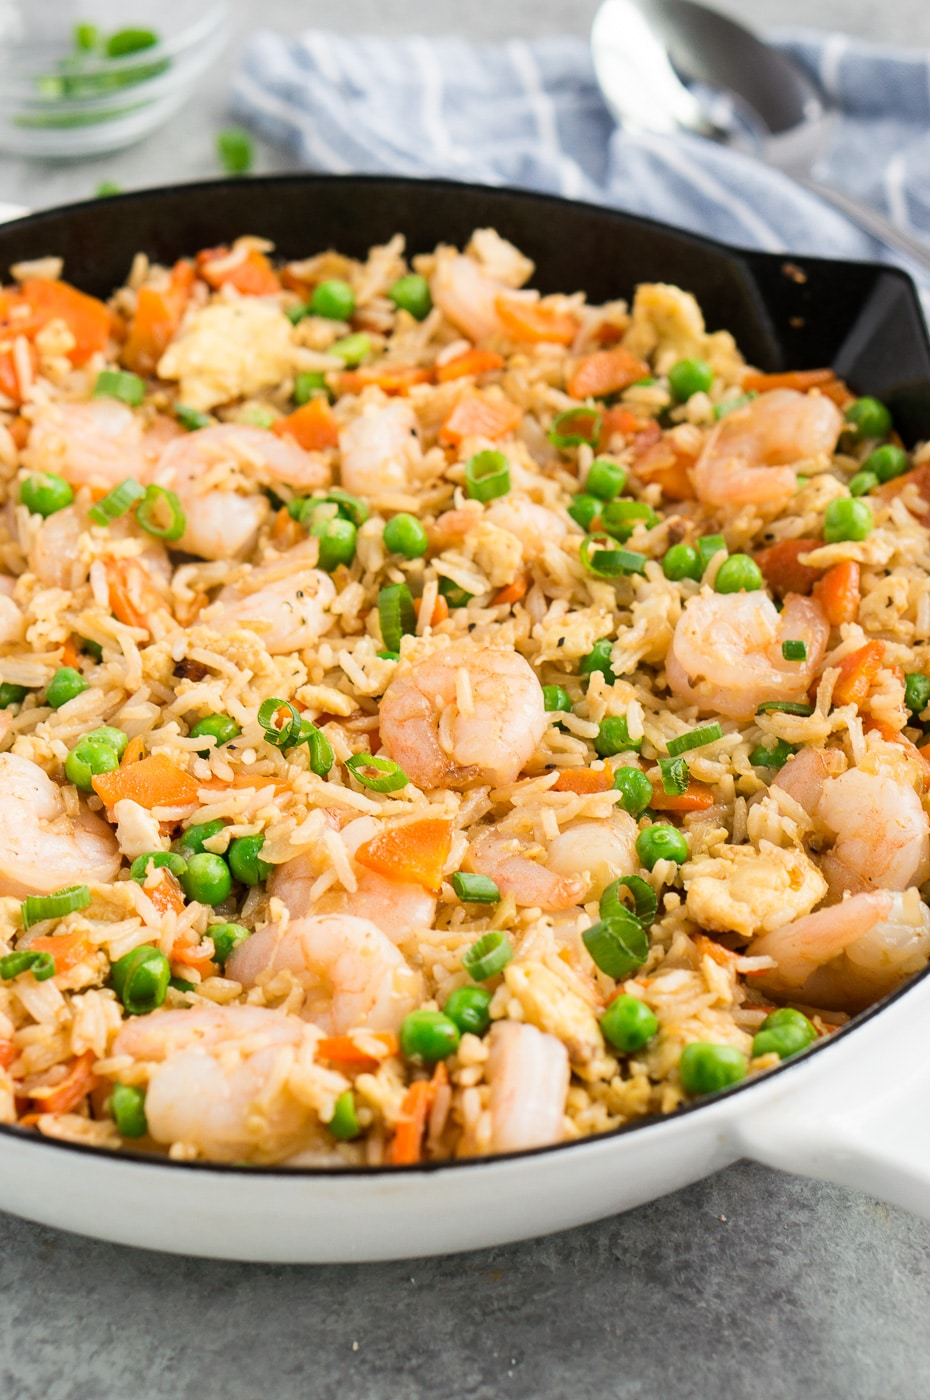 fried rice and shrimp recipe made in a skillet